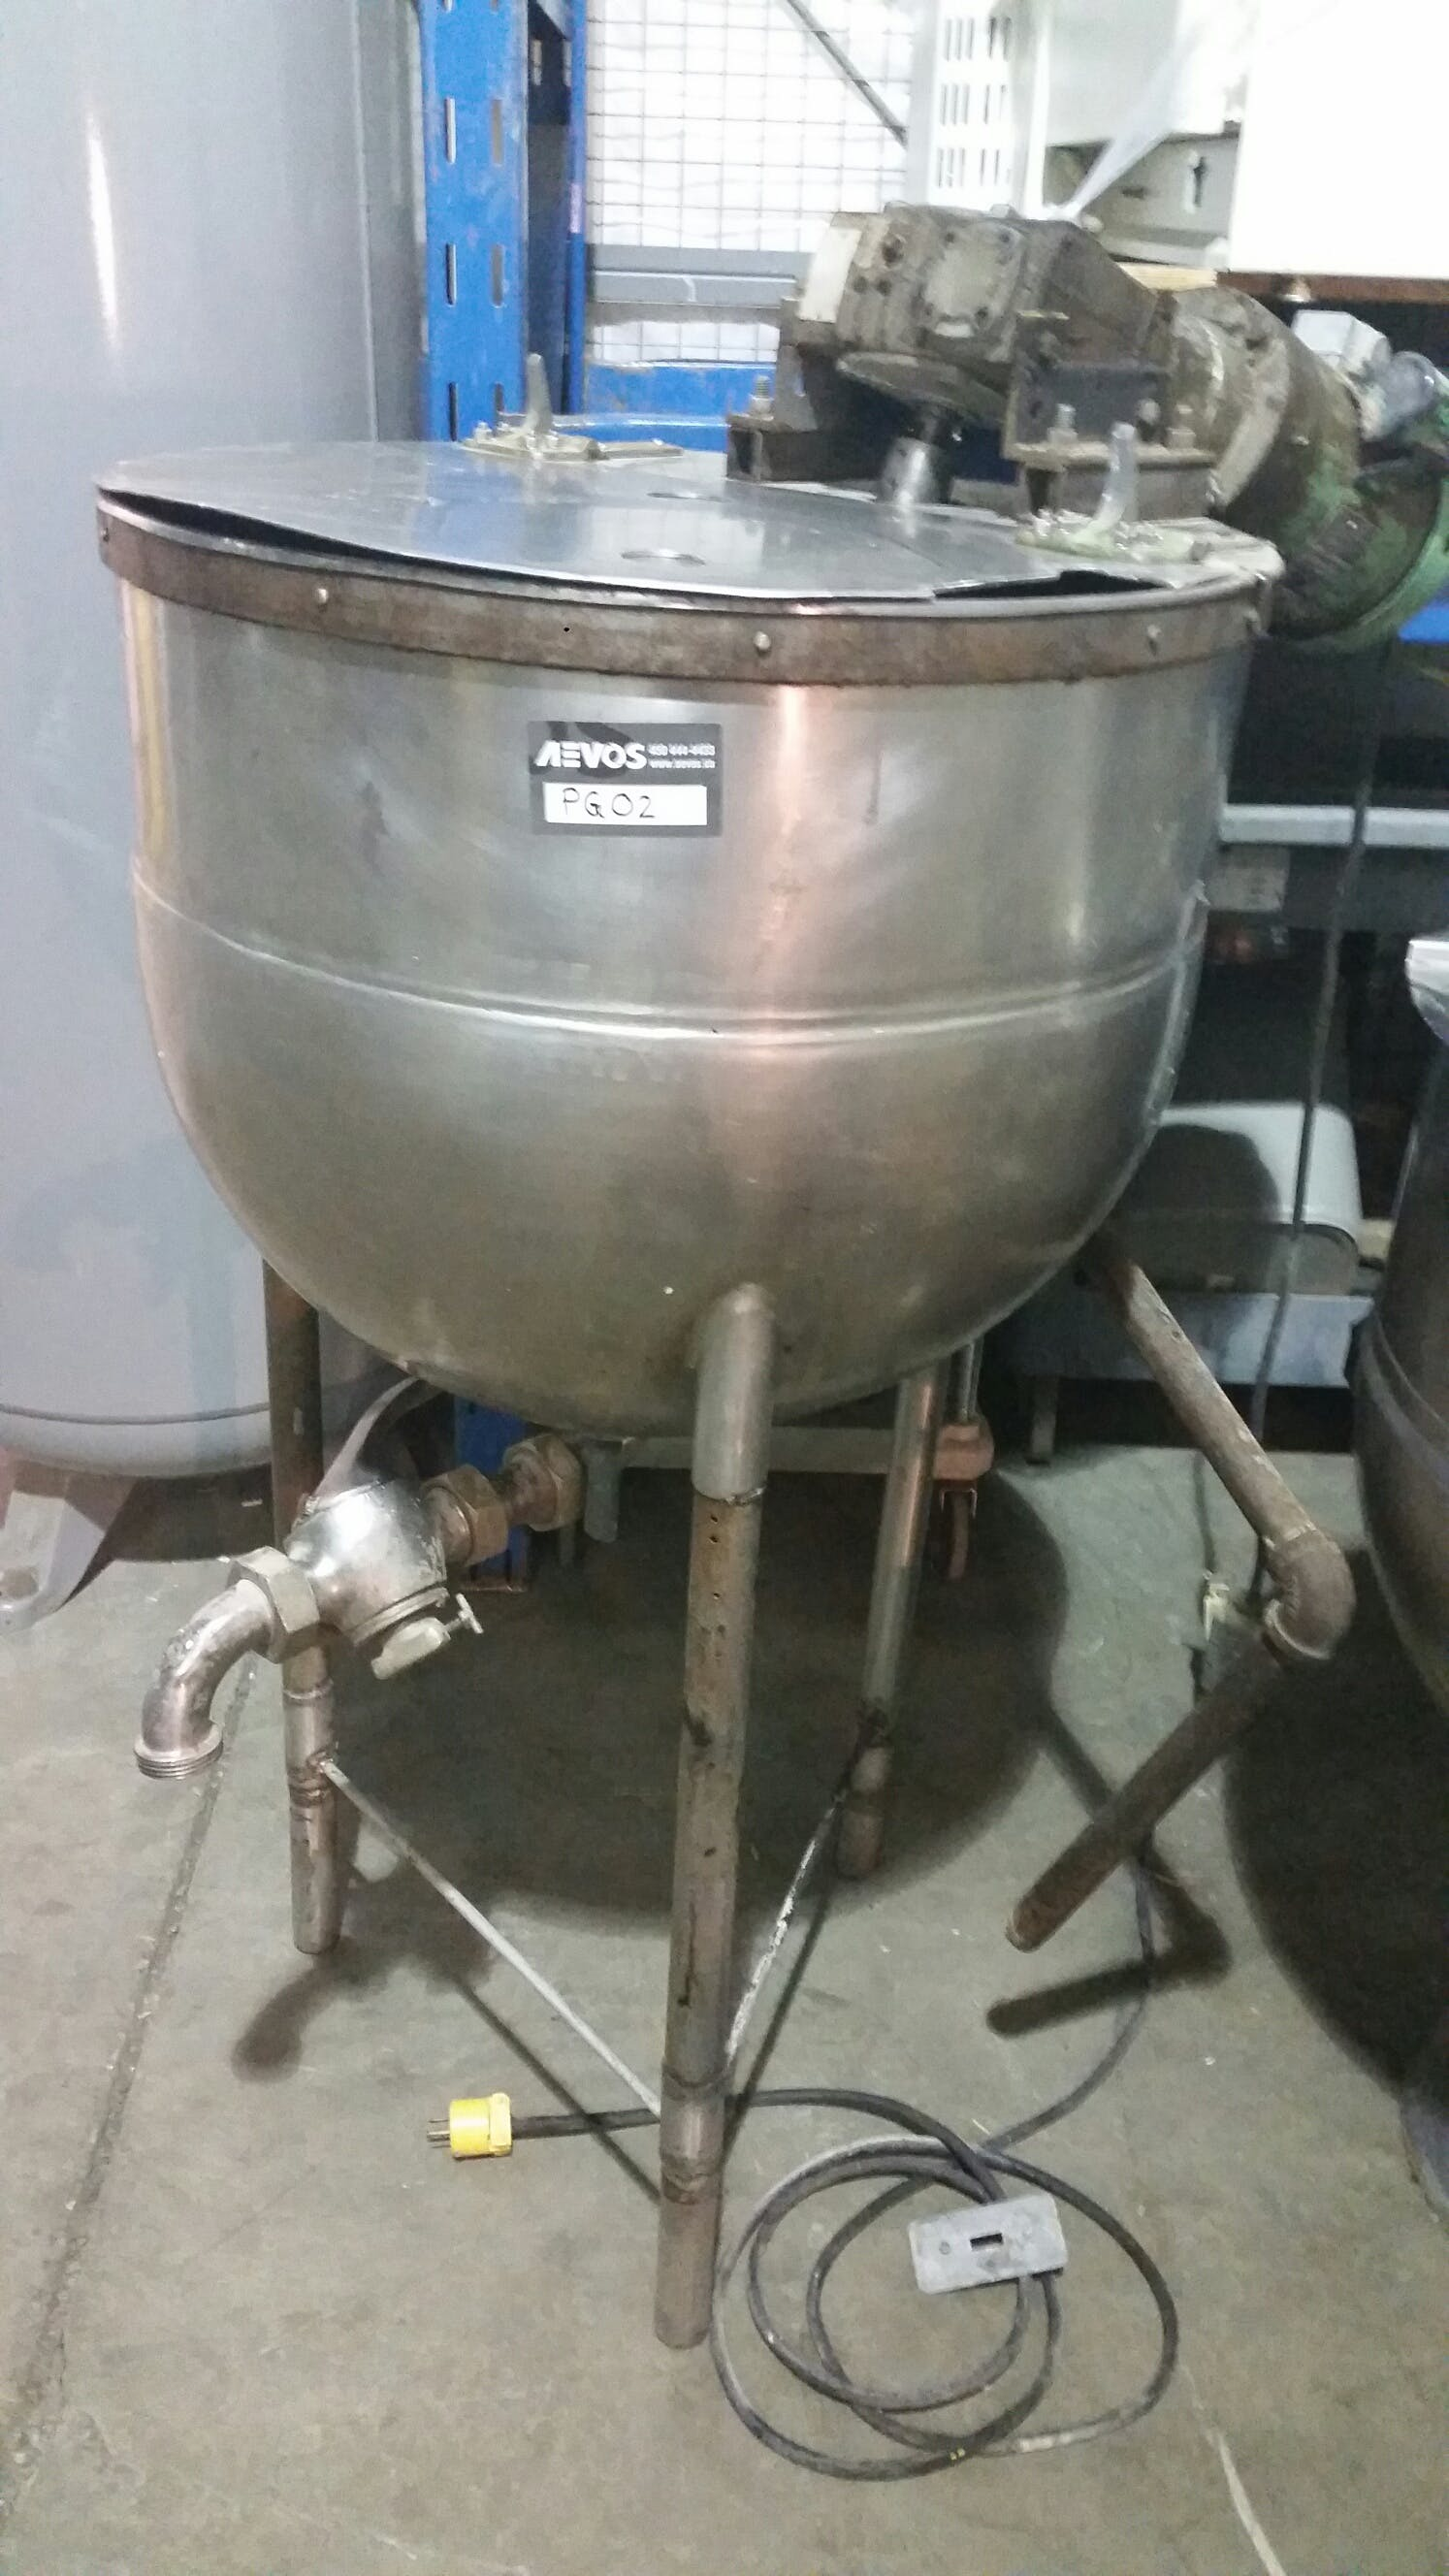 Jacketed Stainless Steel tank with Electric mixer Mixing tank sold by Aevos Equipment